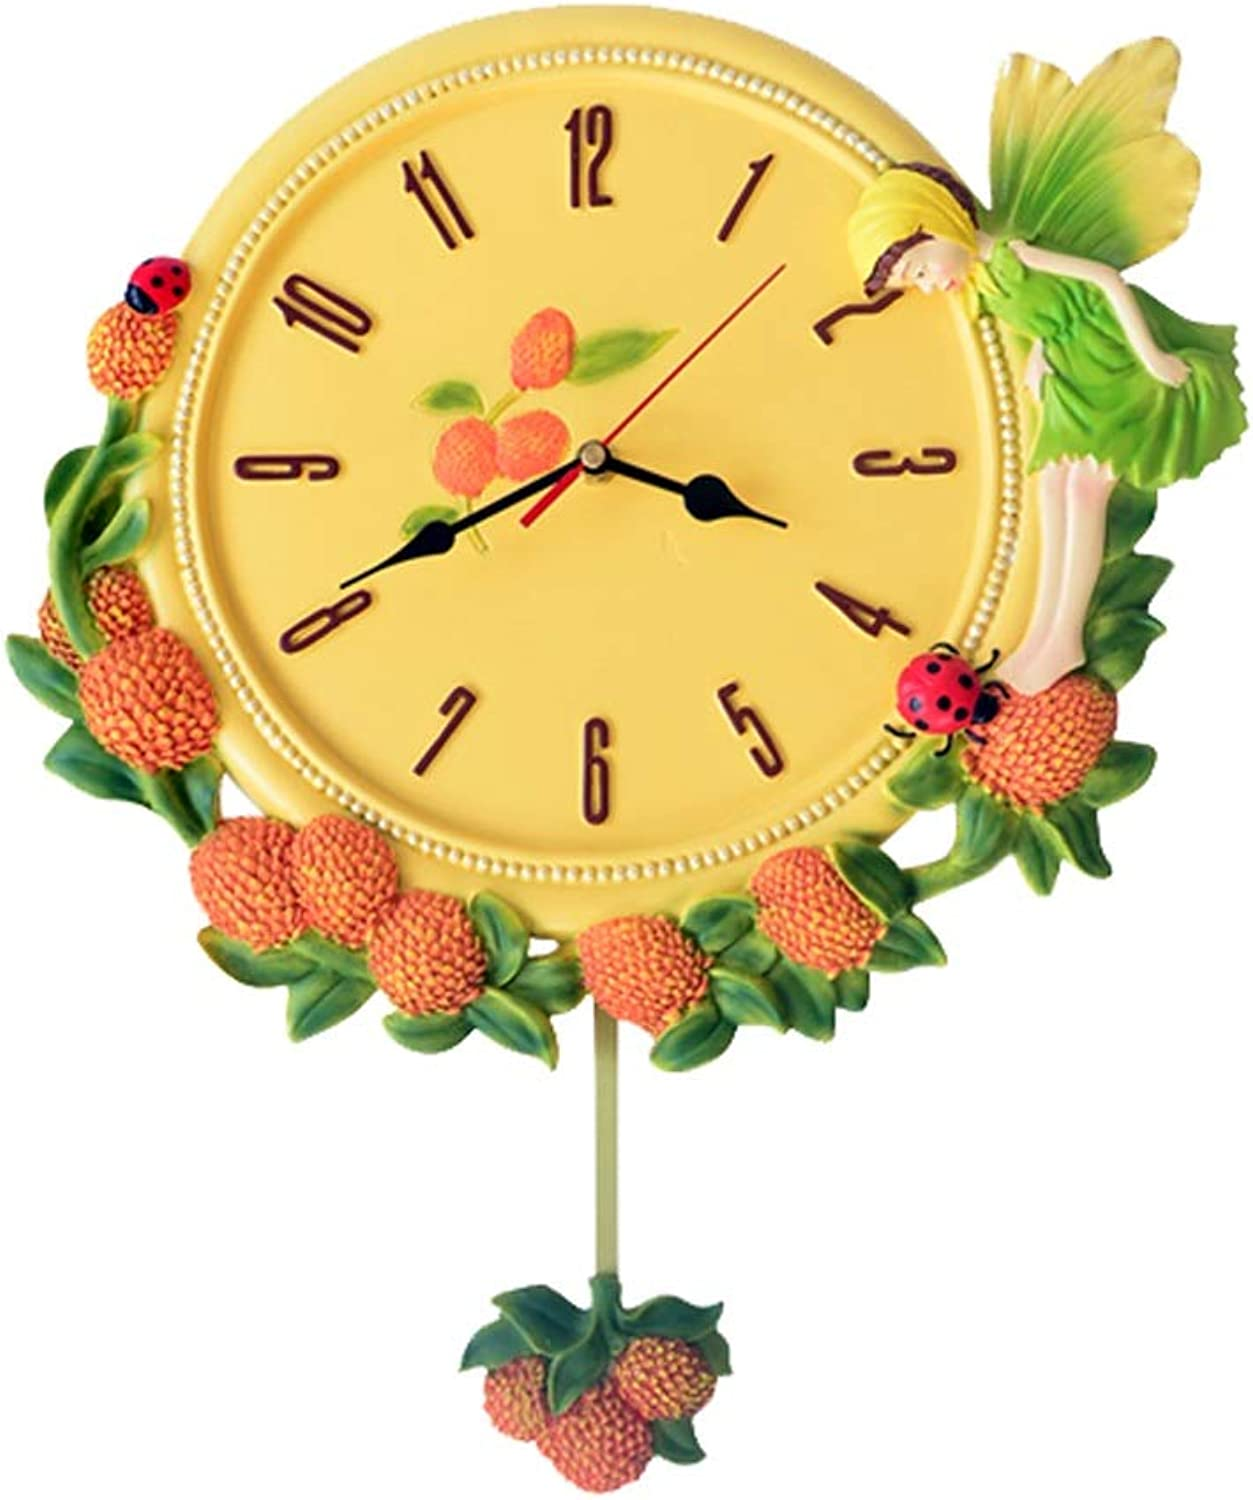 YONGMEI Wall Clock - Living Room Mute Swing Garden Bedroom Wall Charts Creative Personality Decorative Clock Table (color   Yellow, Size   45  38cm)